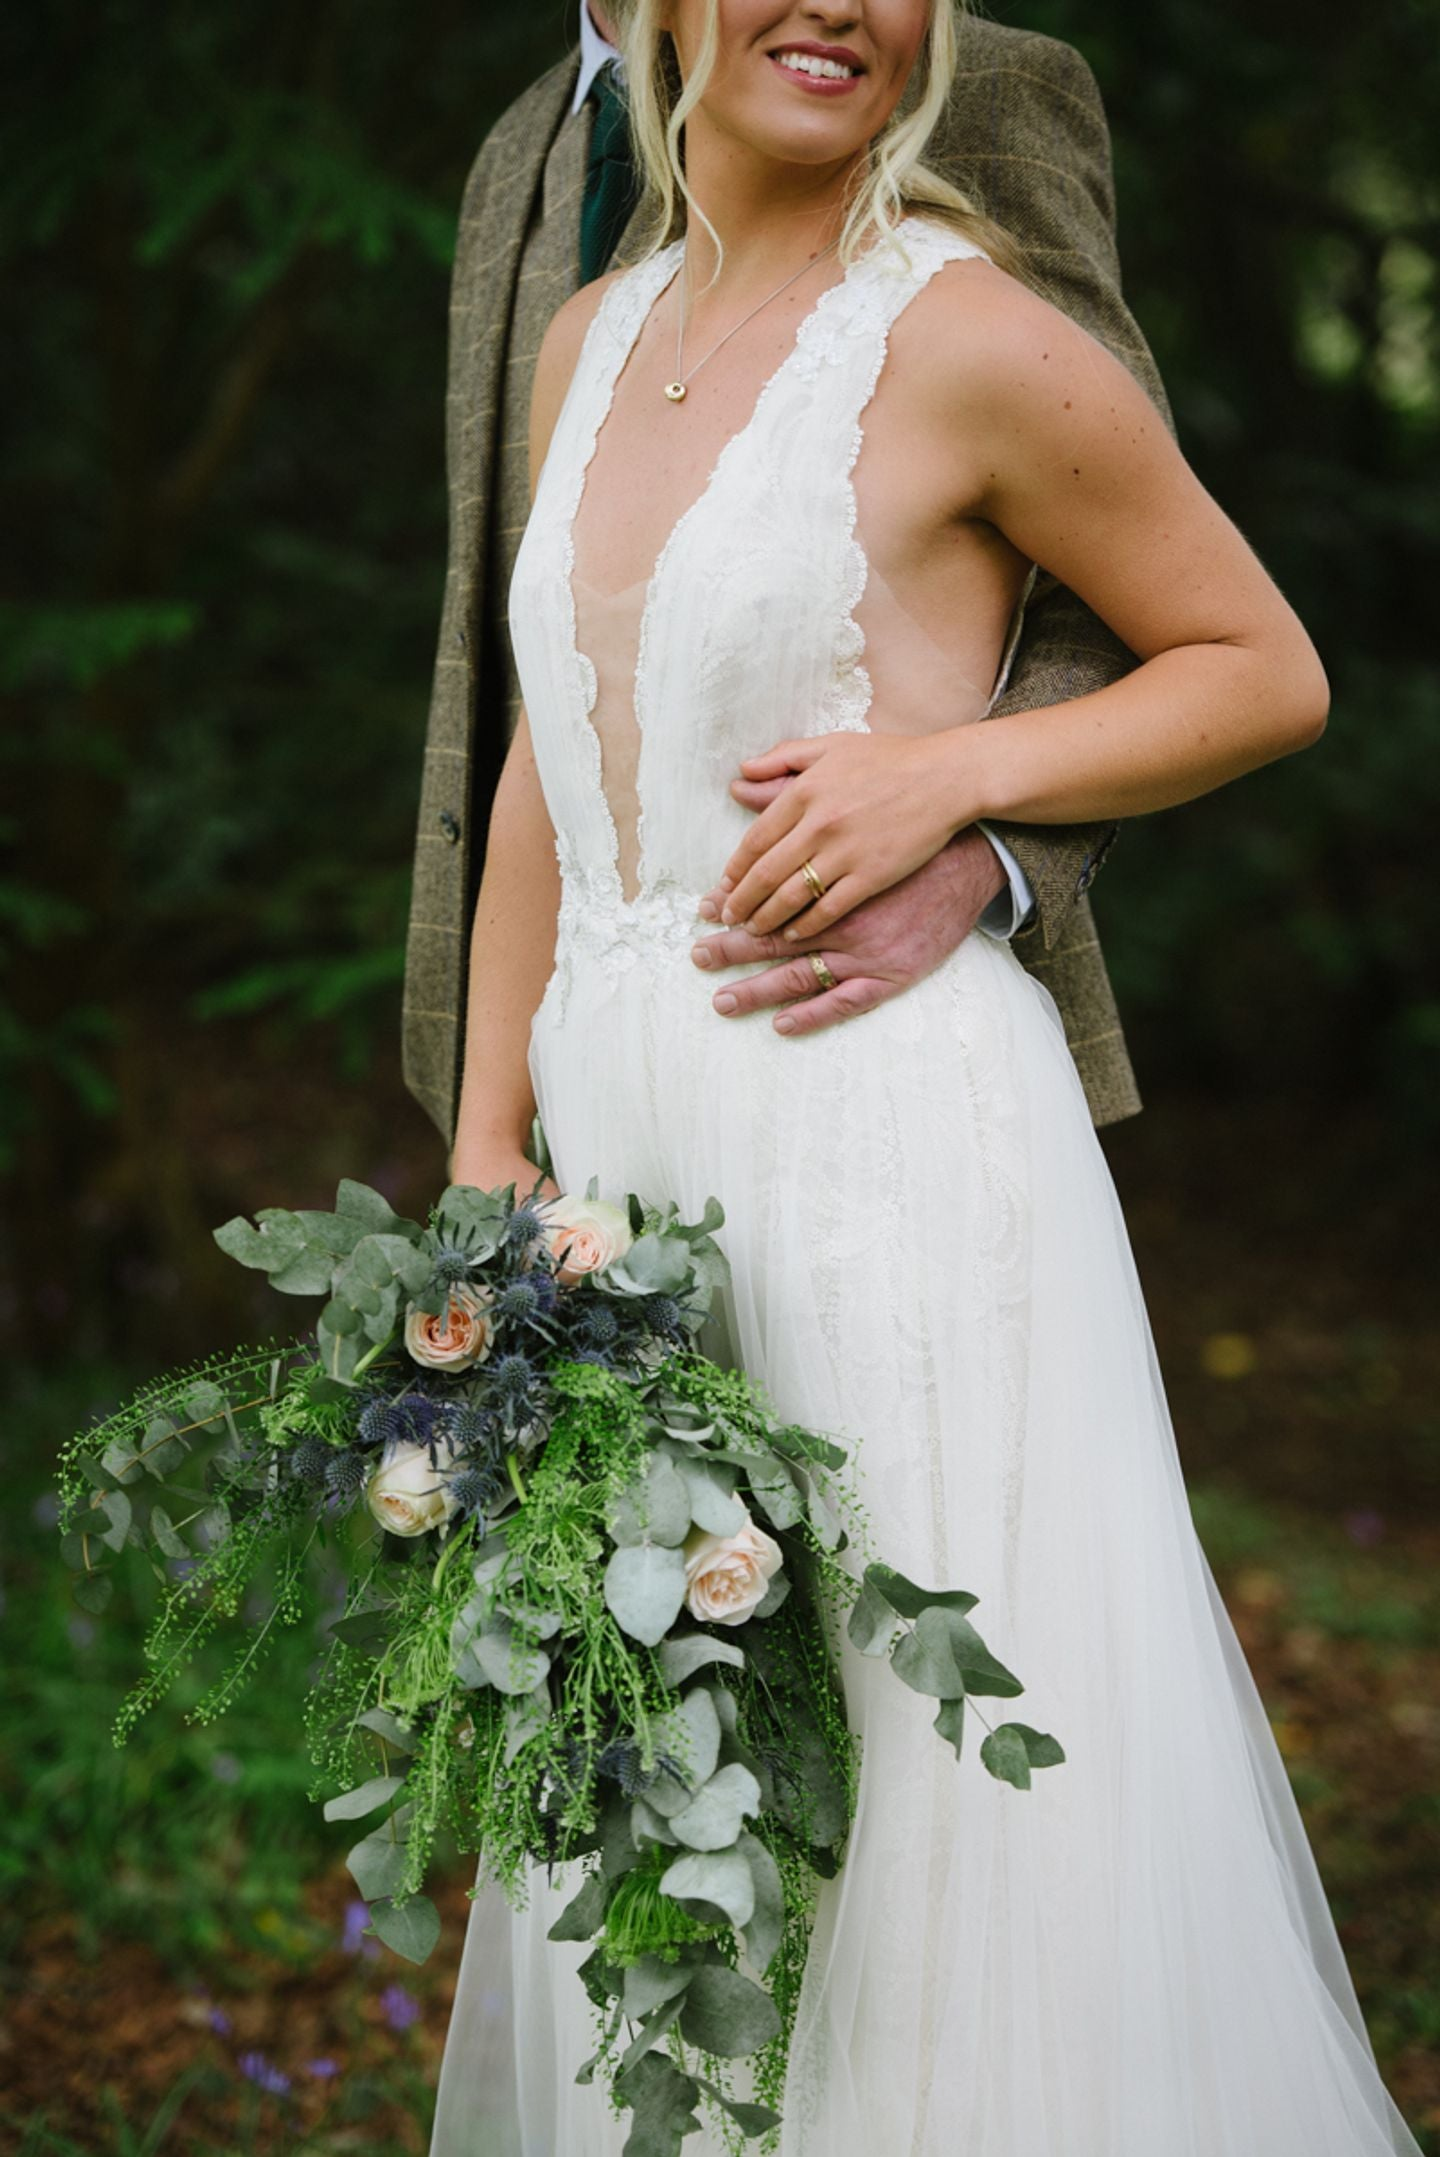 Cornish country house wedding, rustic bridal bouquet and his and hers wedding and engagement rings